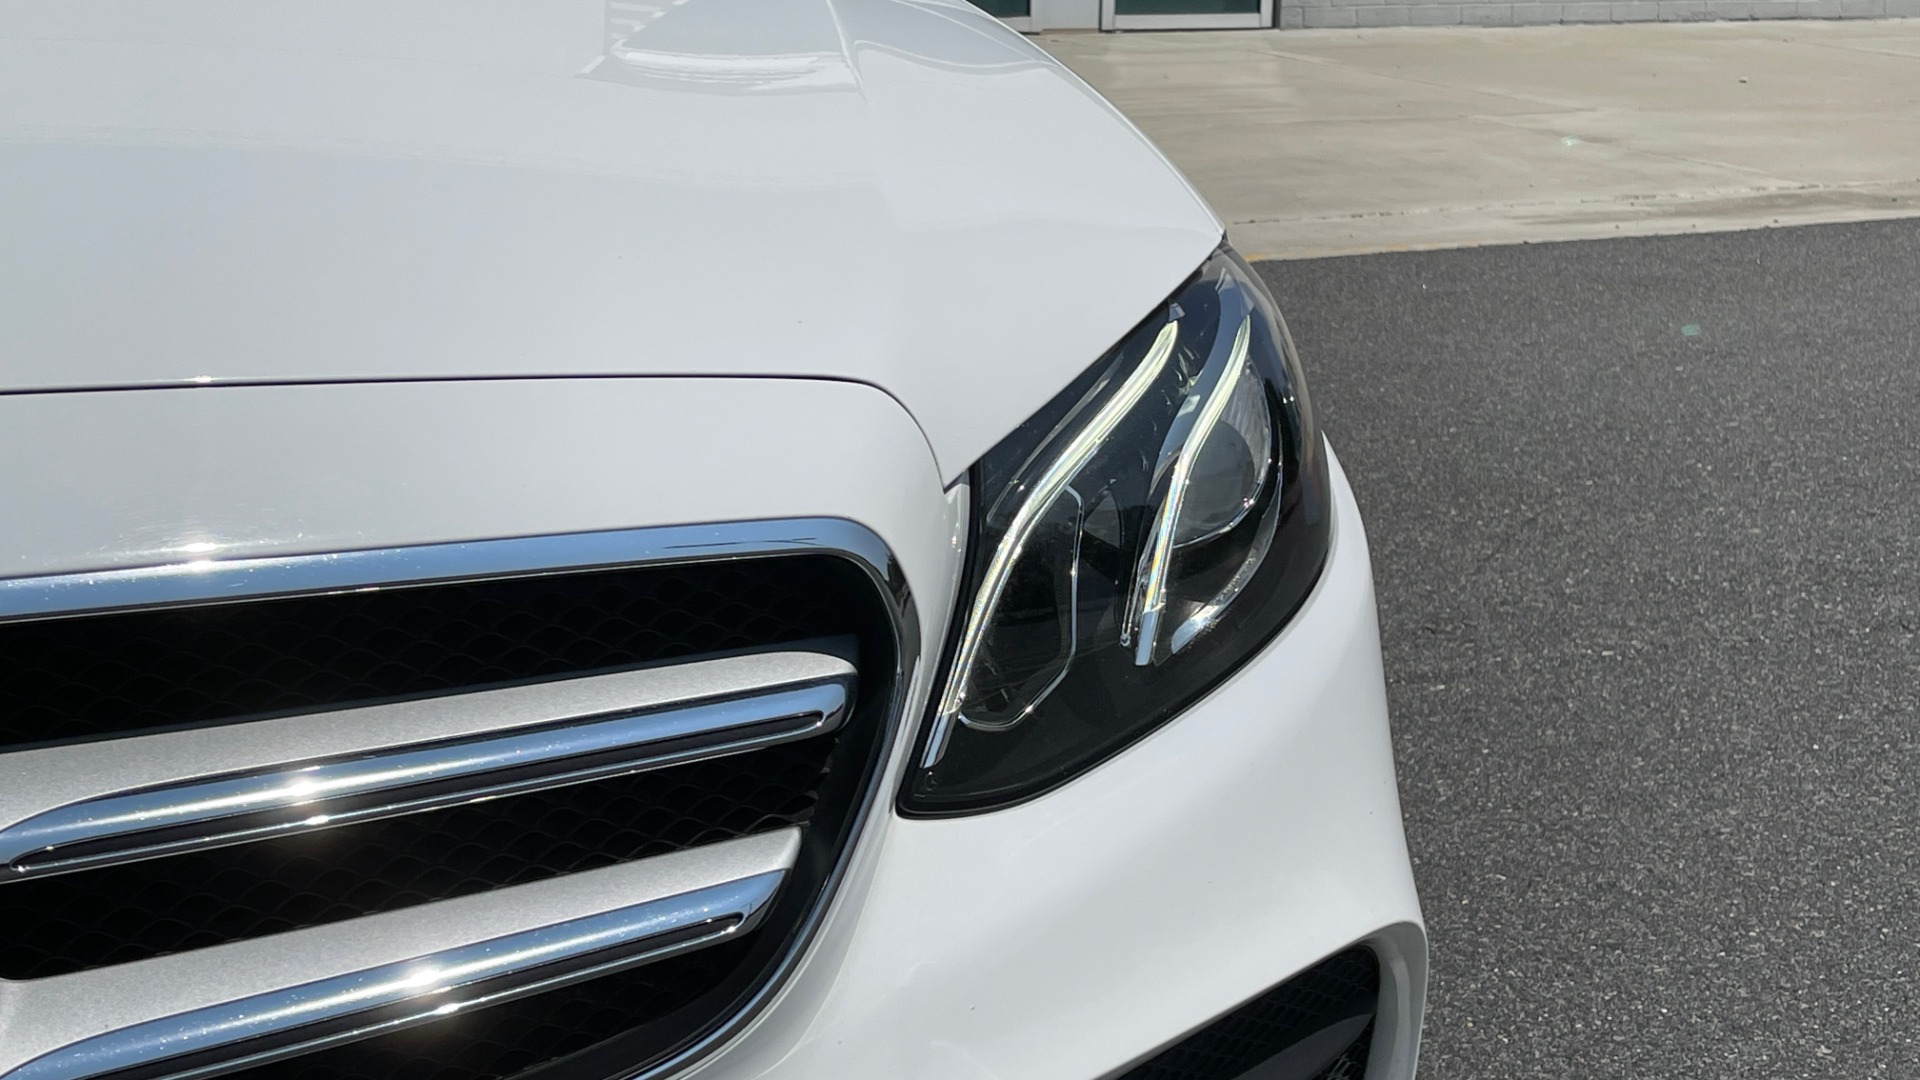 Used 2018 Mercedes-Benz E-CLASS E 300 / 2.0L I4 TURBO / NAV / BSA / SUNROOF / REARVIEW for sale Sold at Formula Imports in Charlotte NC 28227 16